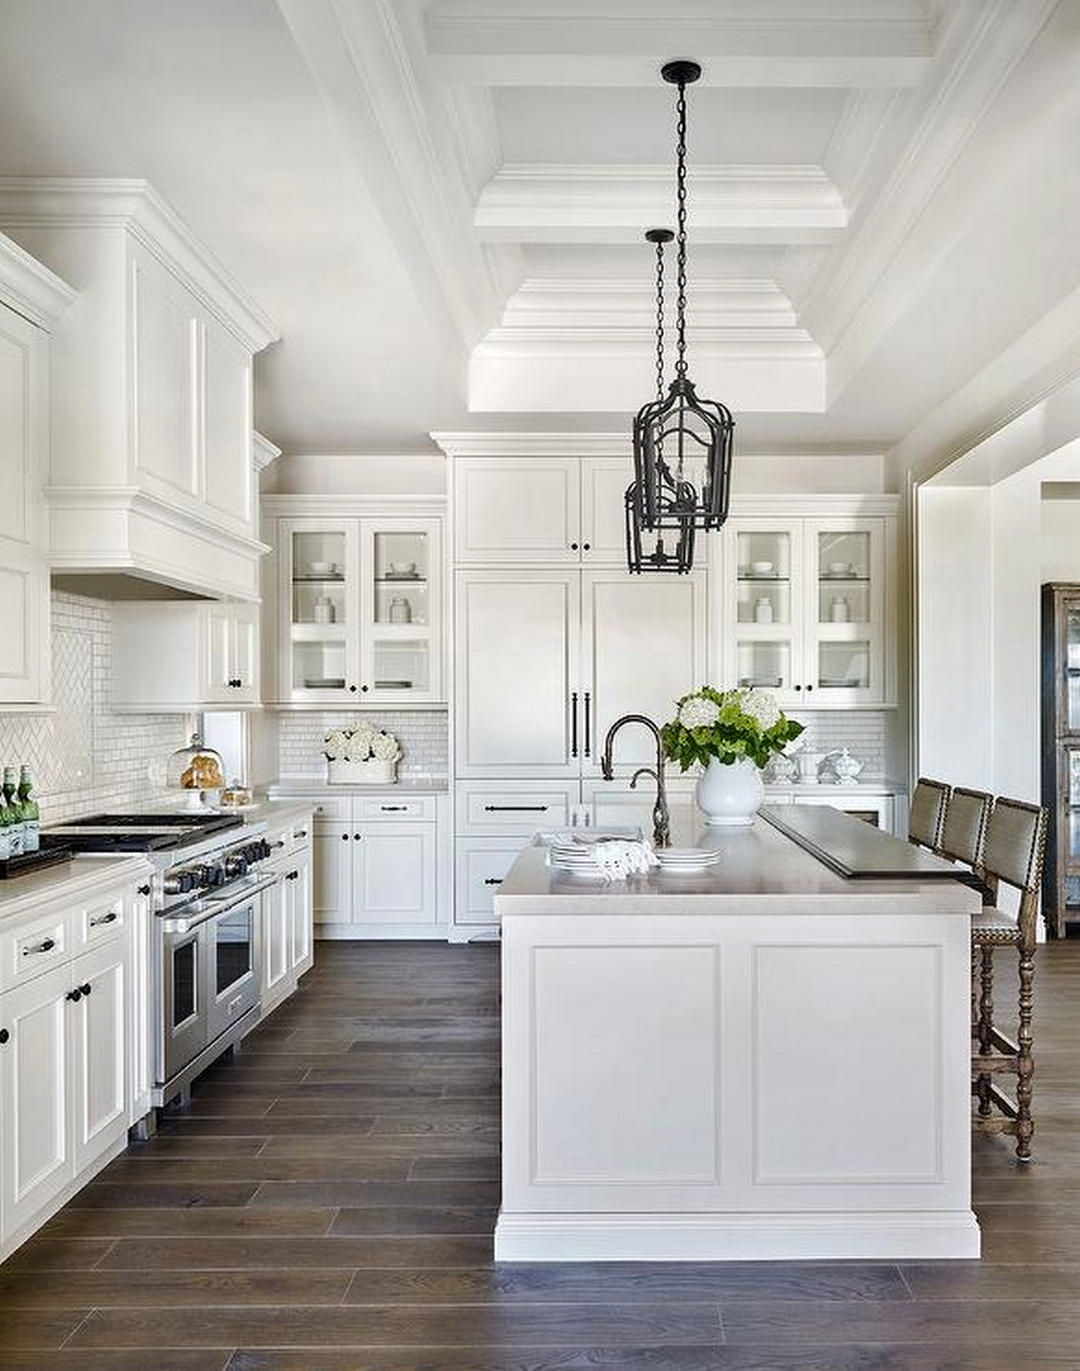 Why White Kitchen Interior is Still Great for 2019